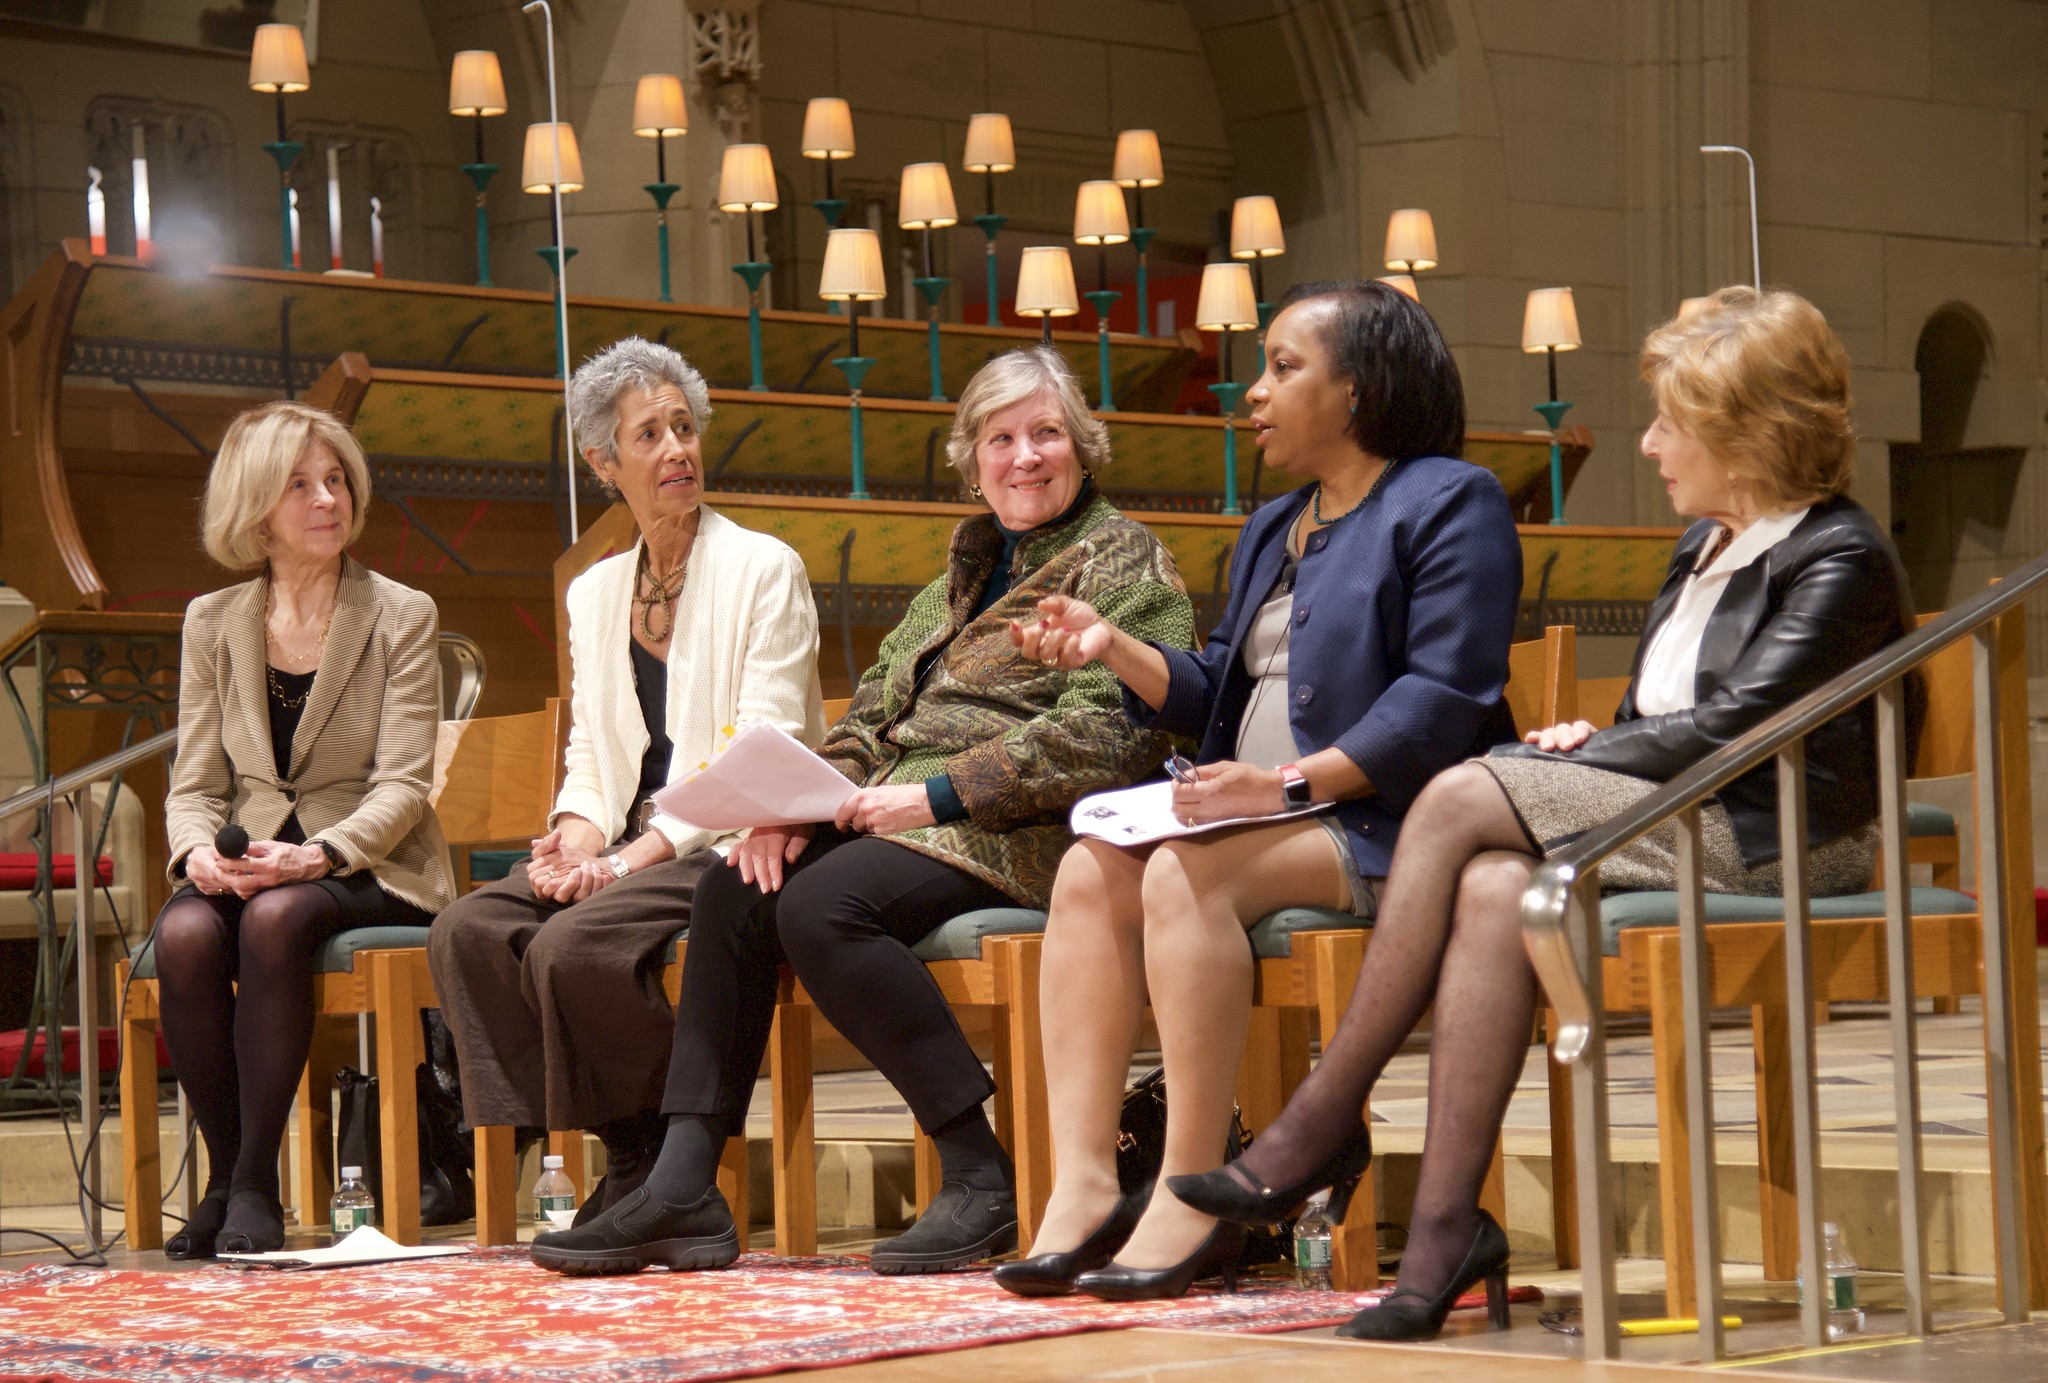 Panel Discussion on Opportunities and Challenges for Women Over 50 : Dr. Janice Steil, Elaine Pagels, Marilynn Preston, Gayle Robinson, and Gail Sheehy. March 14, 2019.